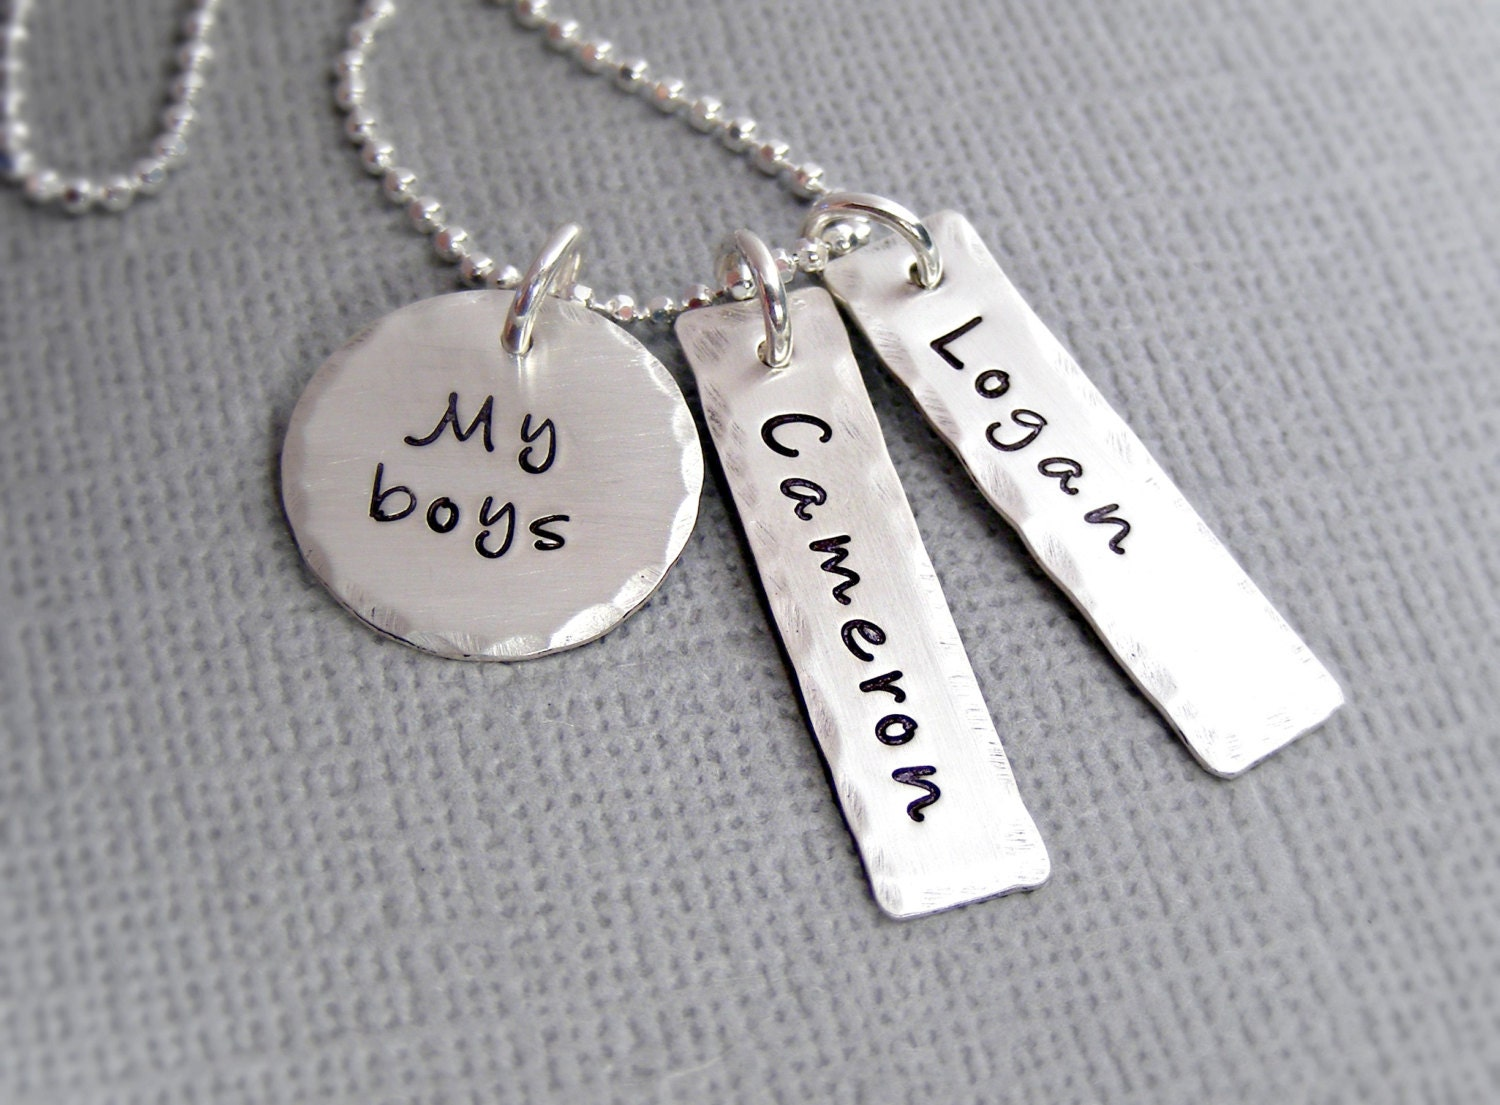 b1a88bf066478 Personalized mothers necklace - Custom Mother's Jewelry - Personalized  Mothers Gift - Mother Son Necklace - My Boys Necklace - Mom jewelry